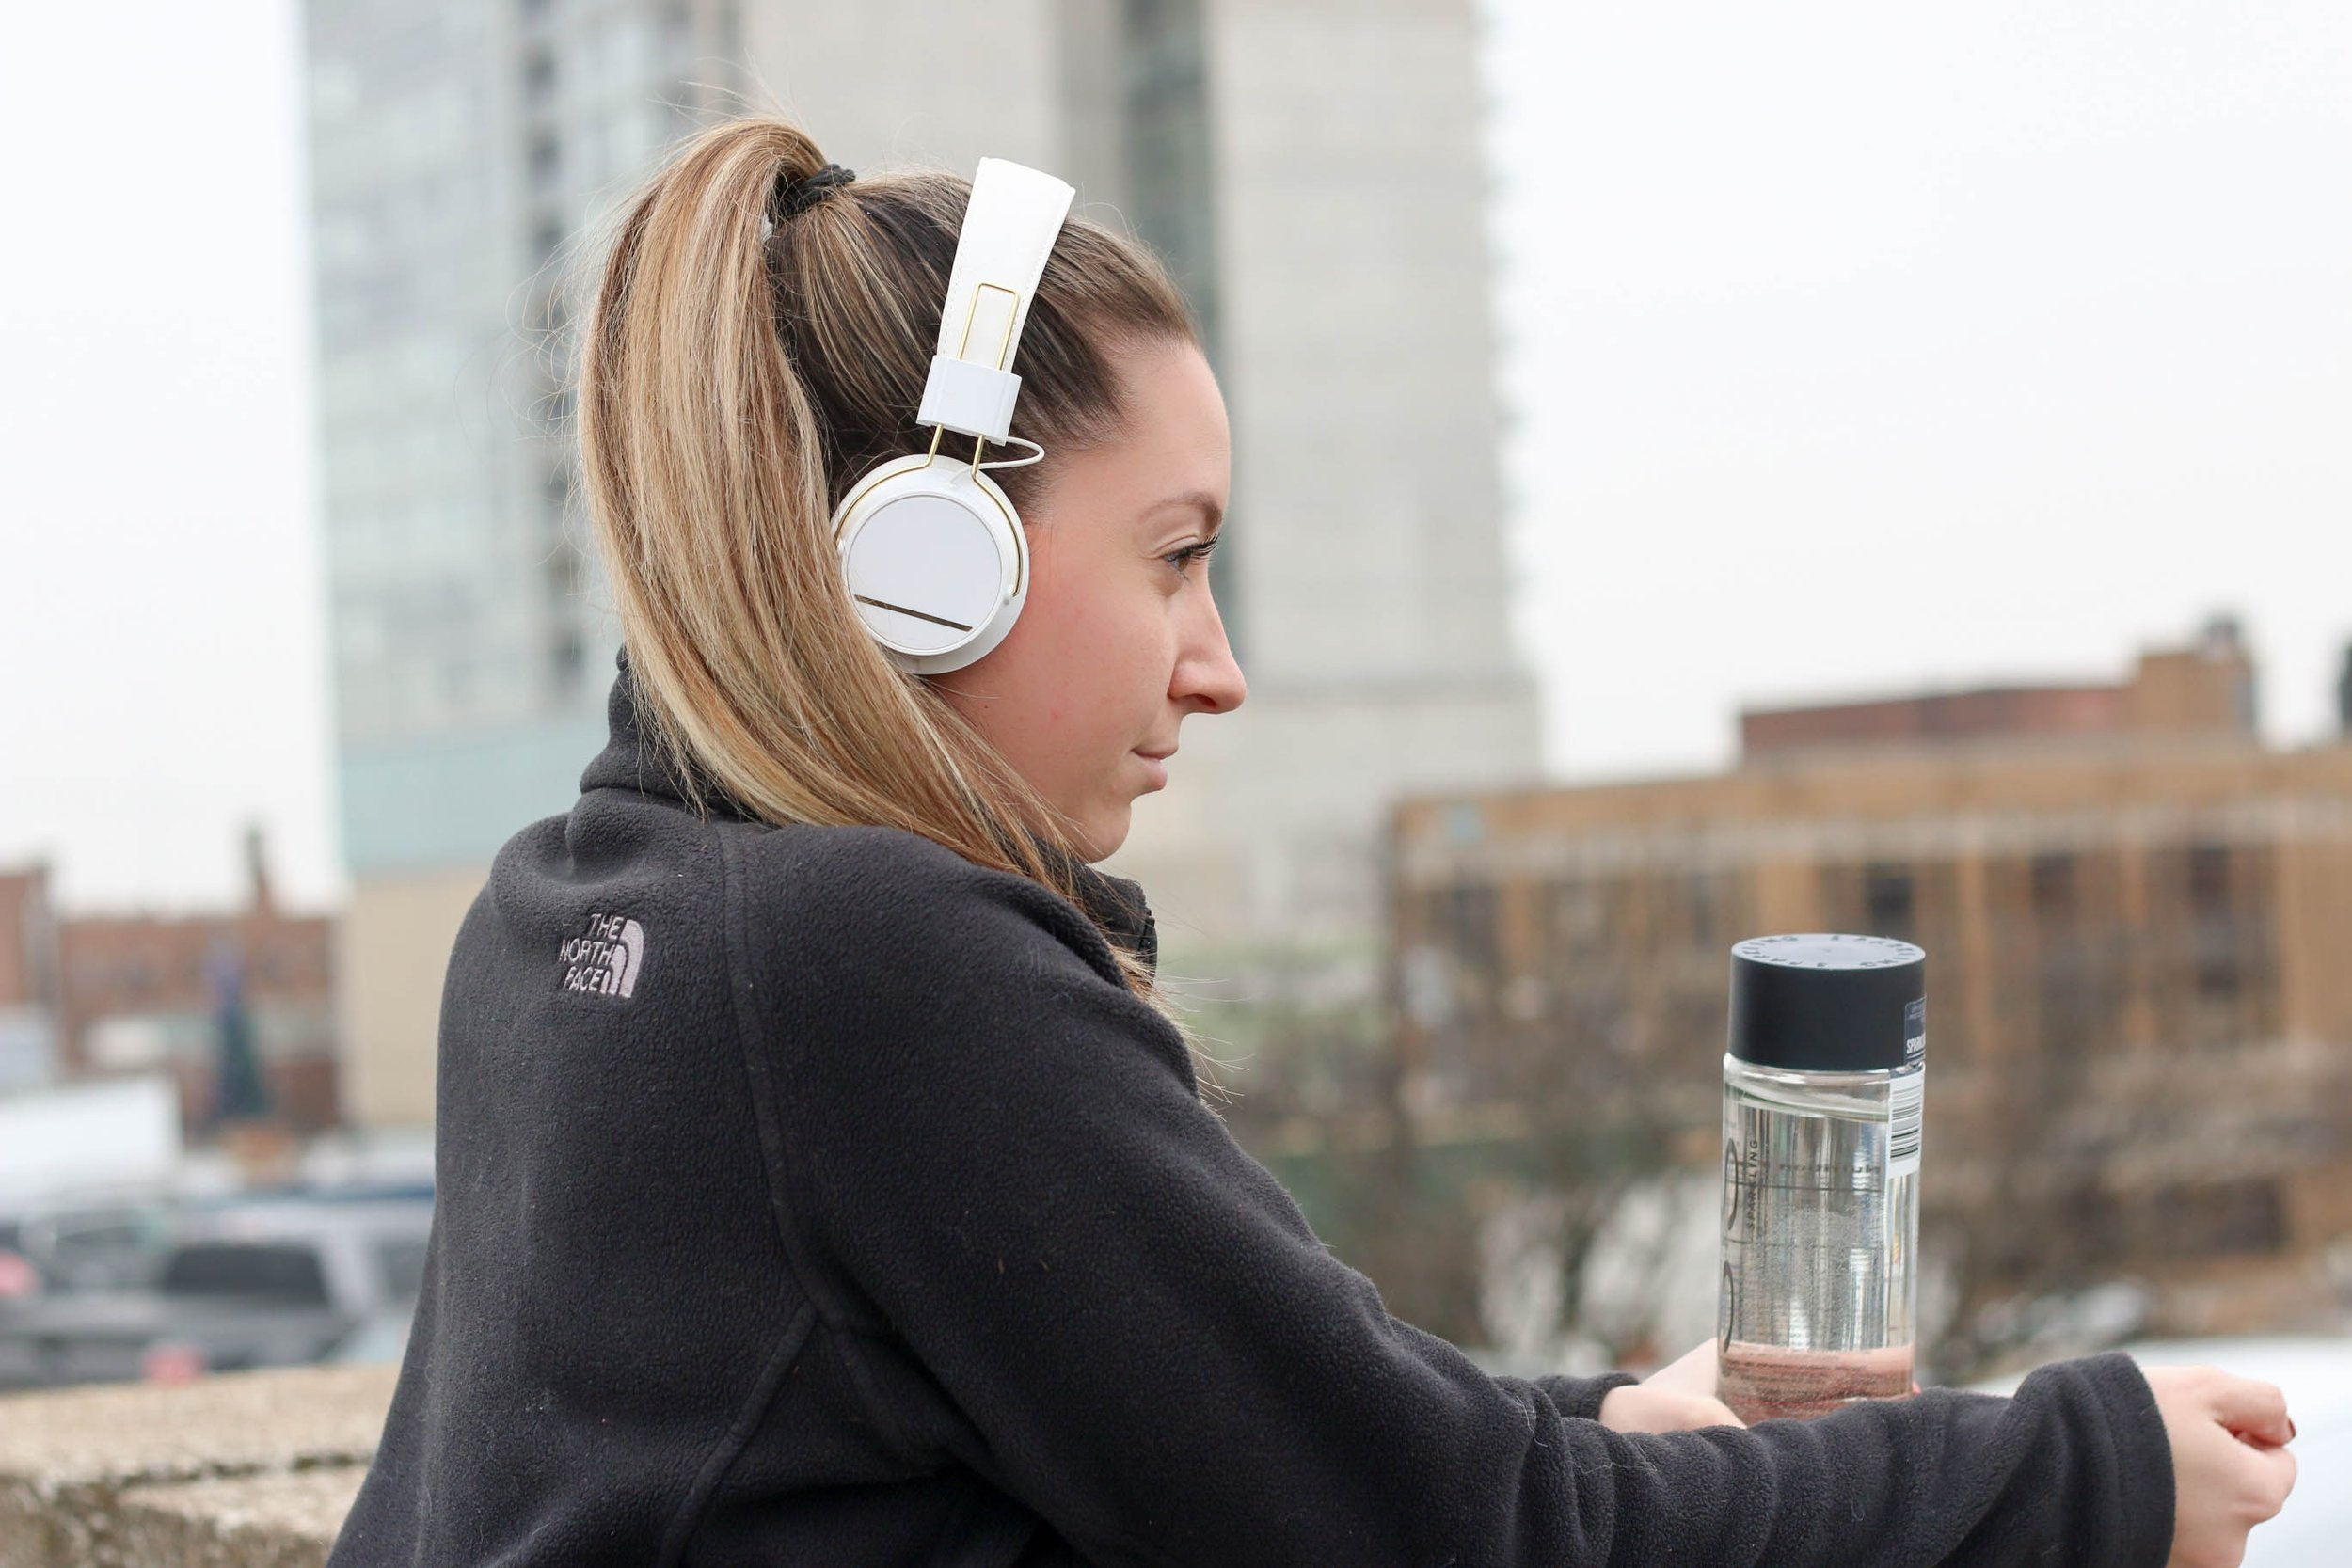 Girl with headphones in city.jpg